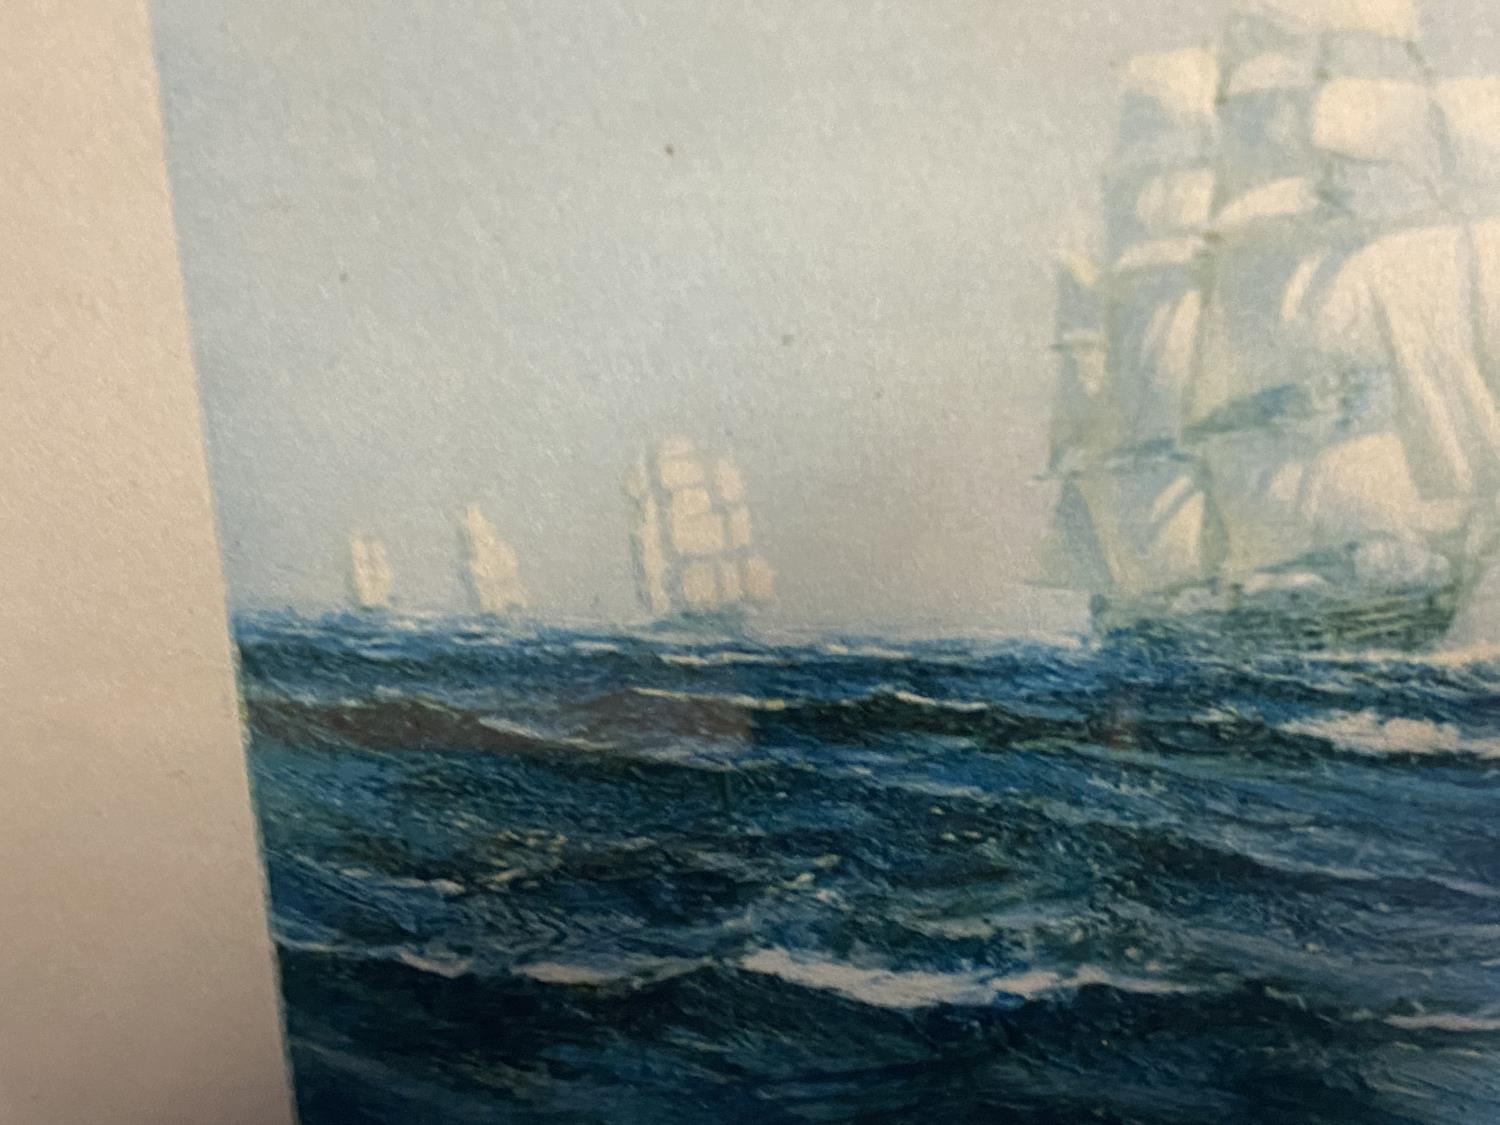 Black and White etching on Paper, Sailing ship fully rigged at sea, 17 x 30cm , signed and titled in - Image 5 of 15